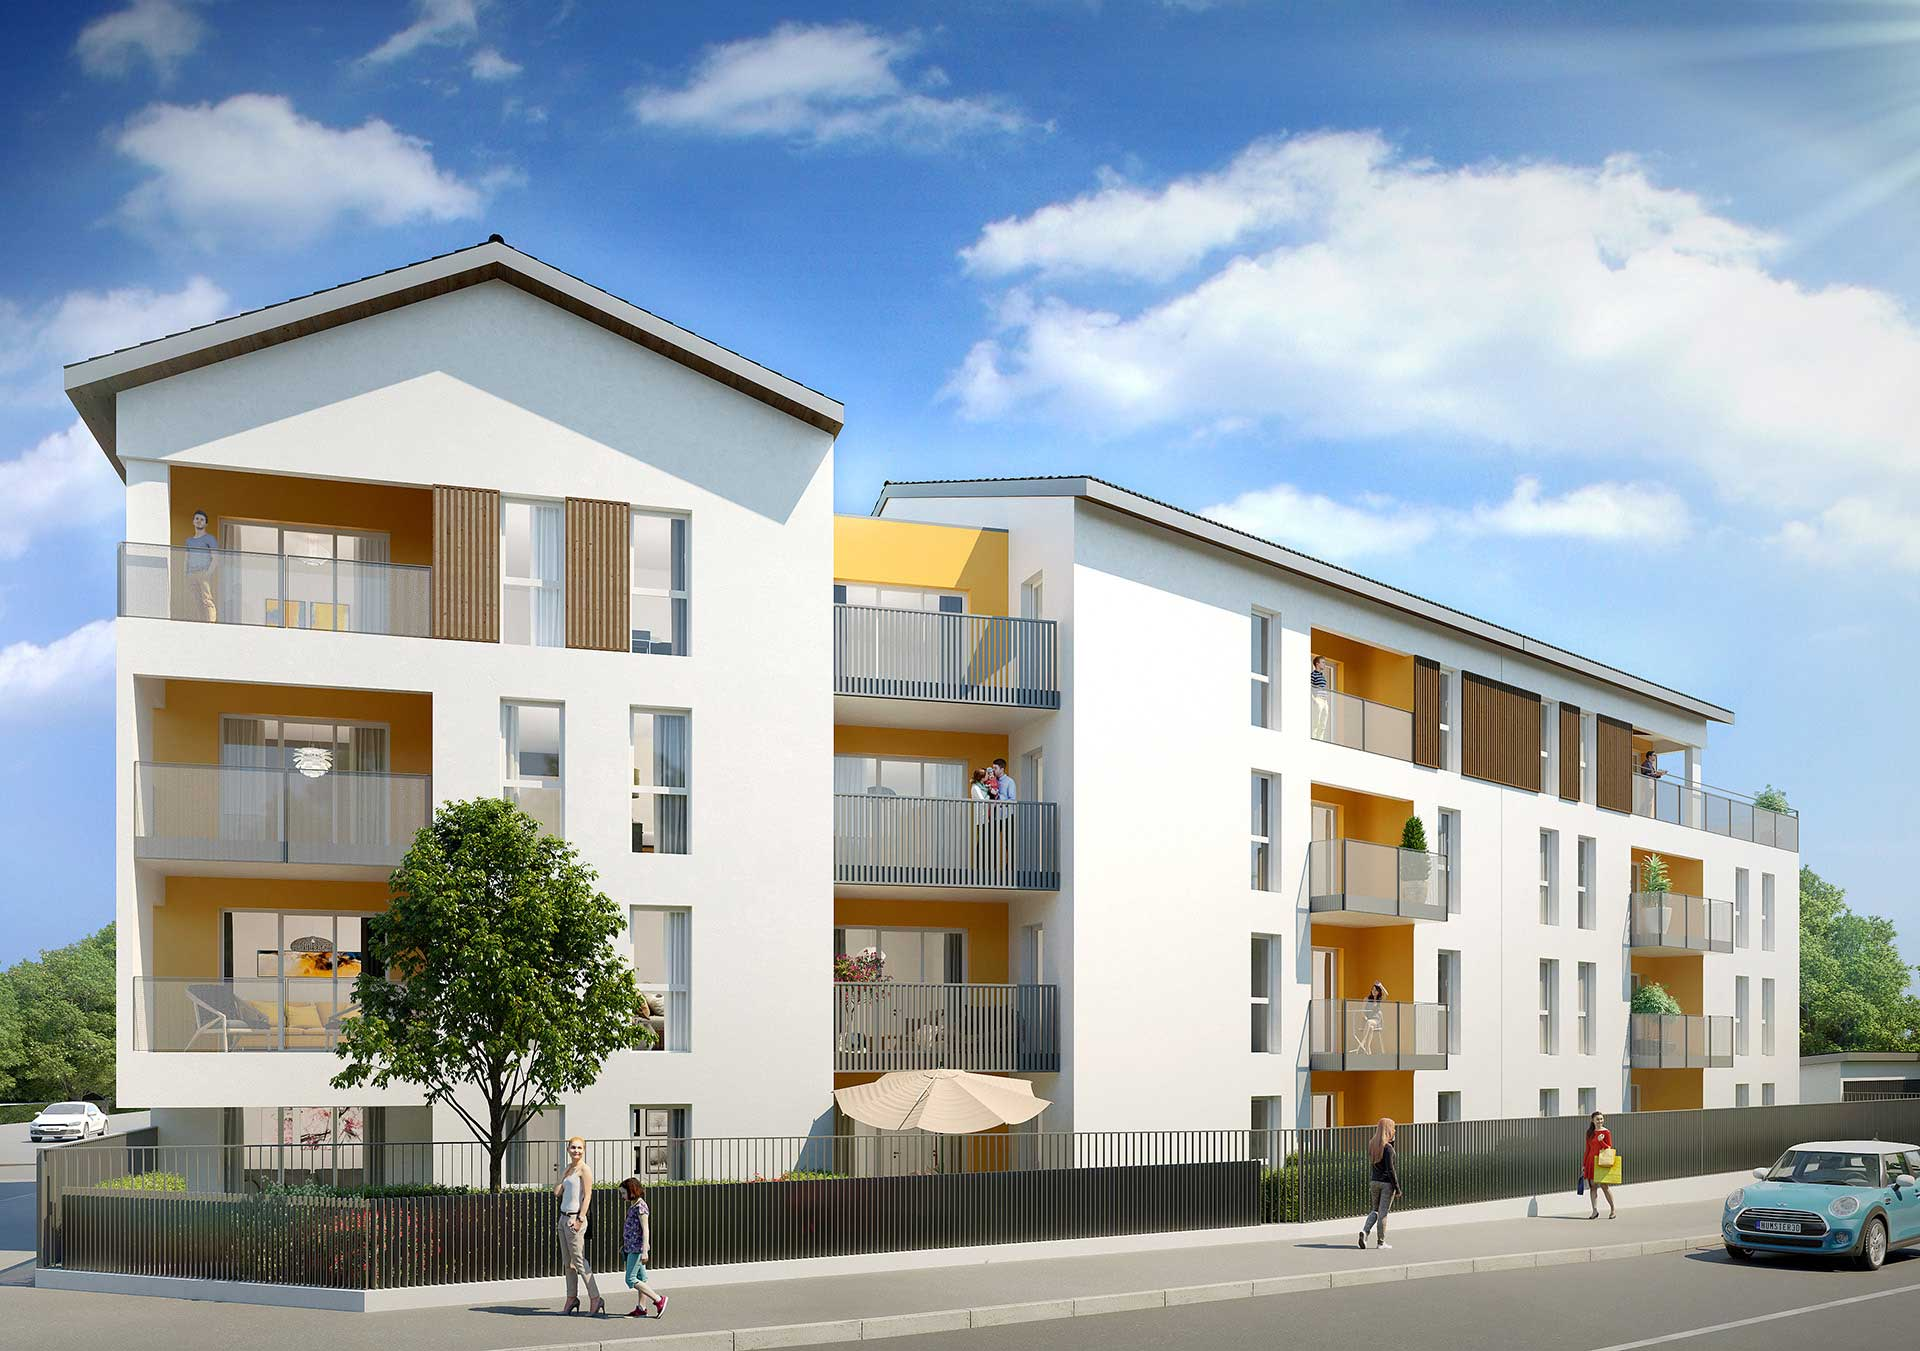 3D Still image of a new housing (3D computer generated imagery).